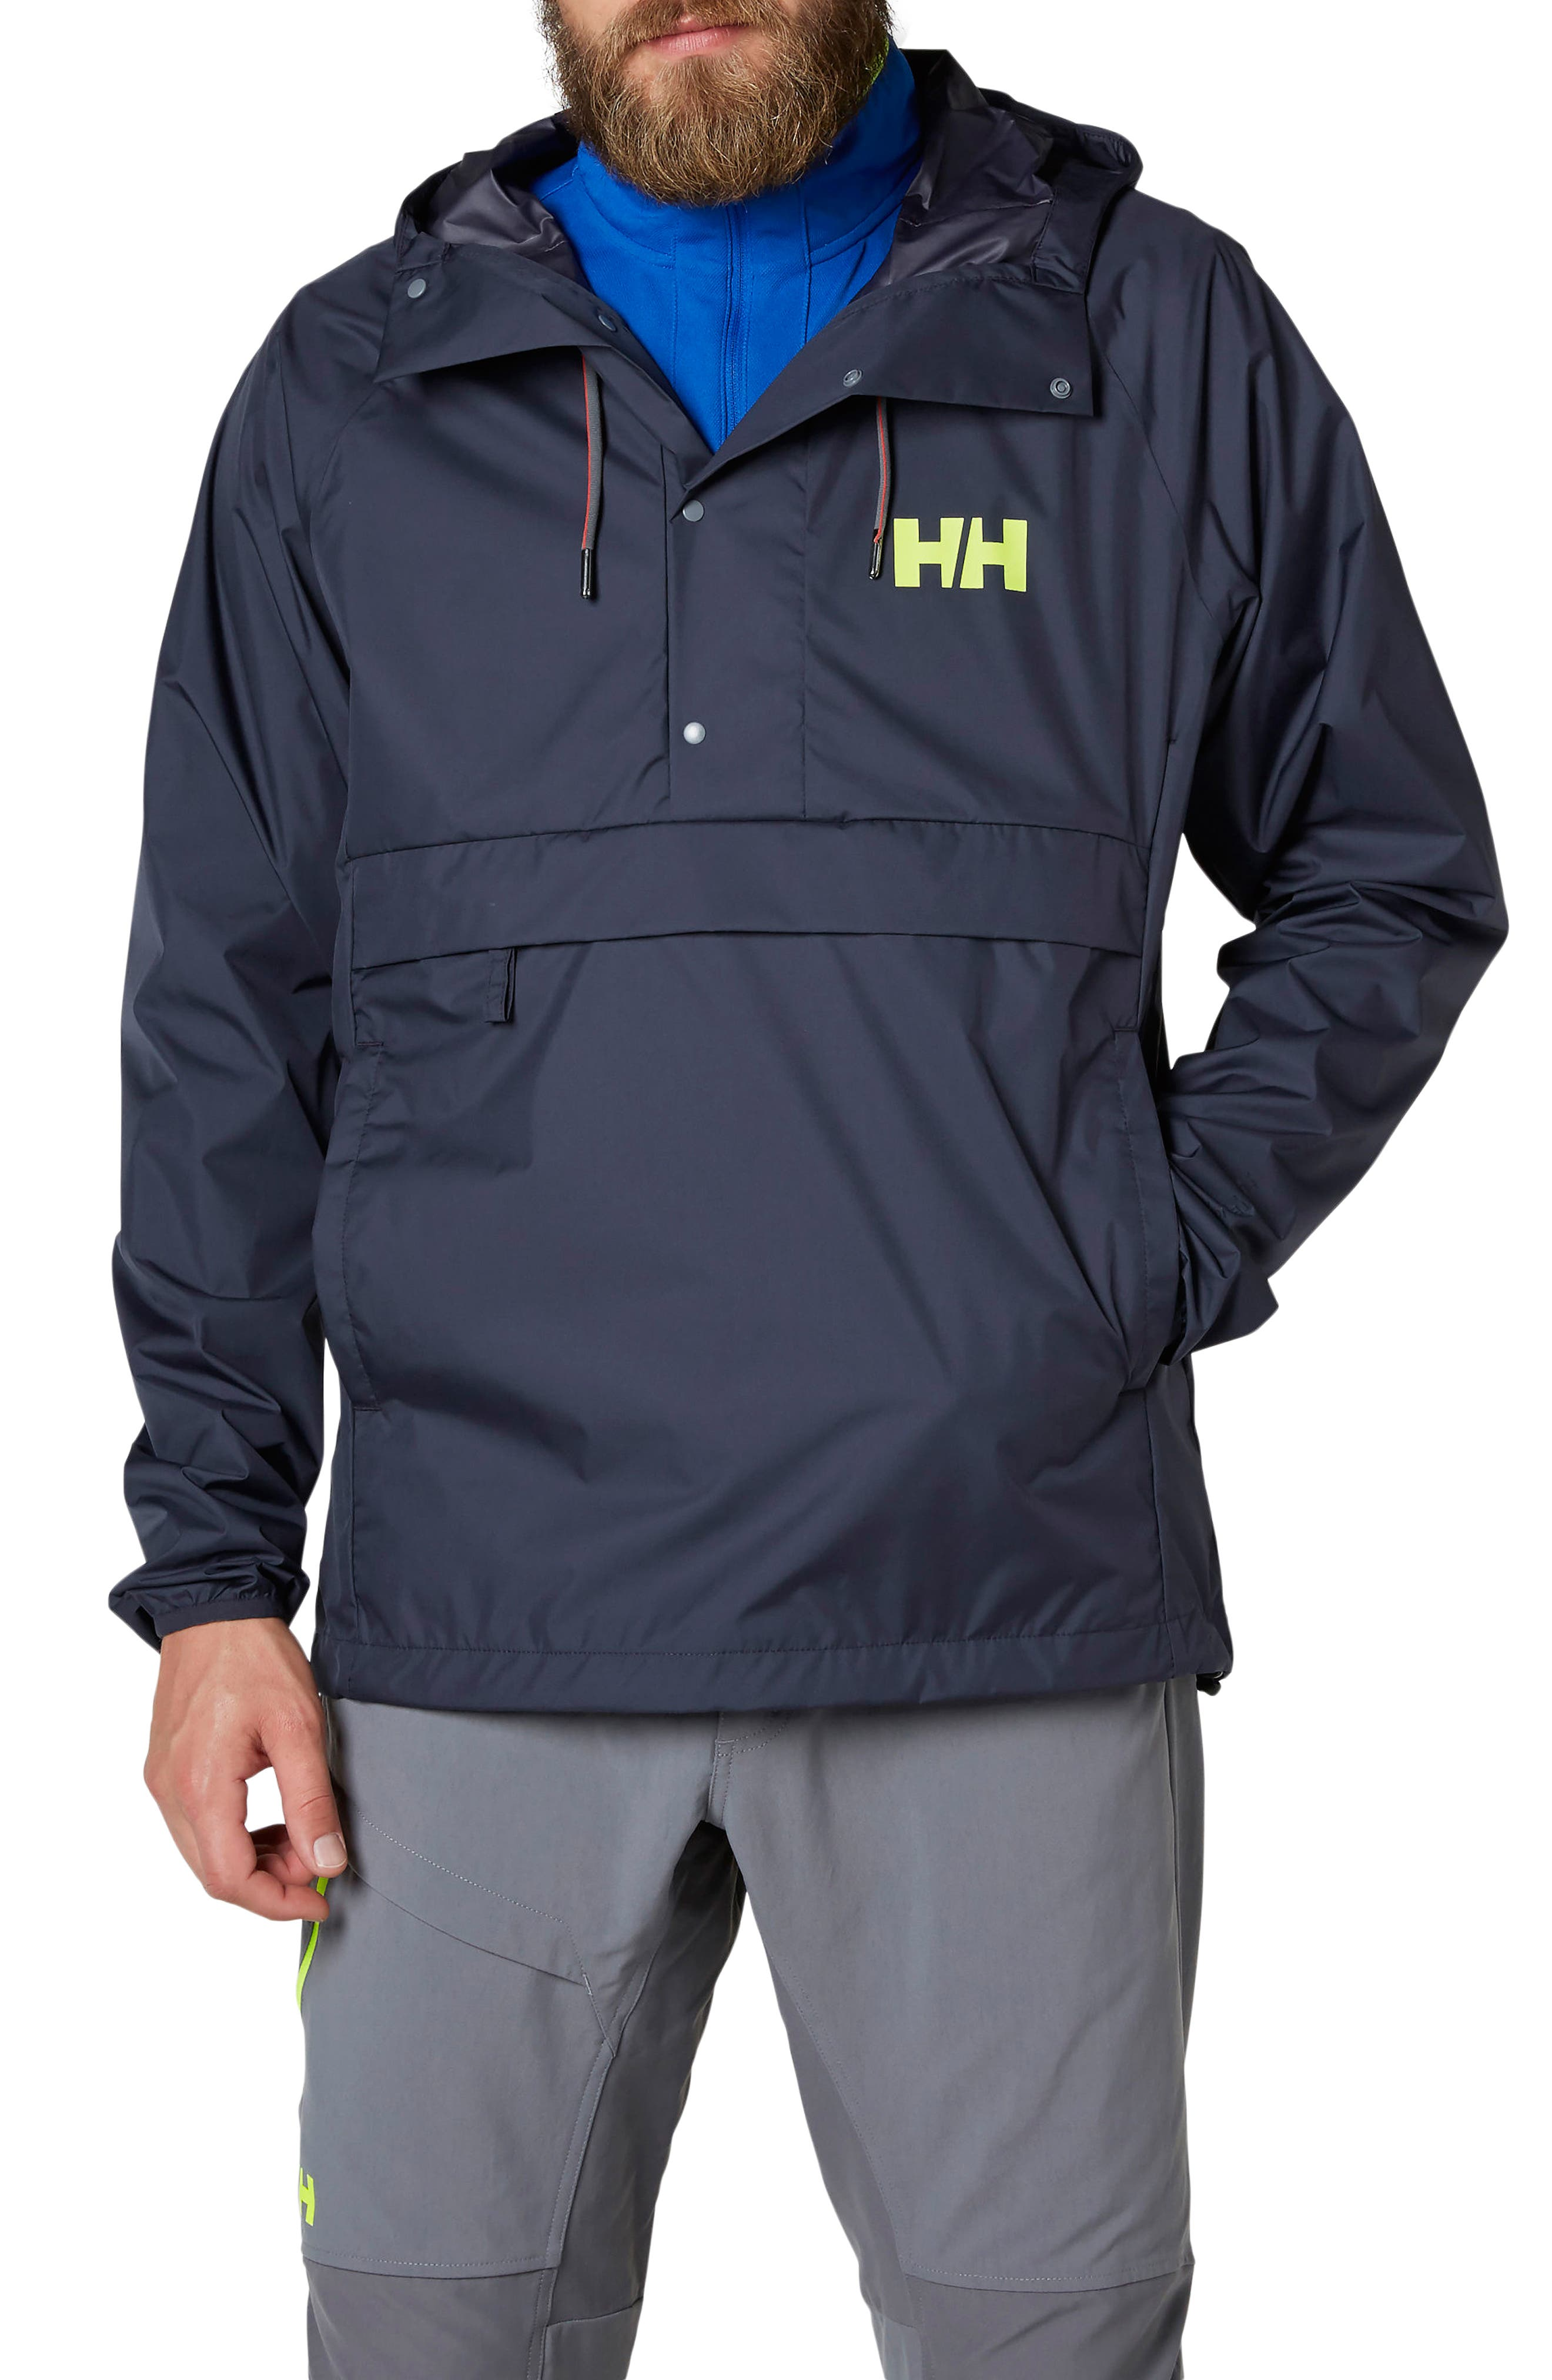 Loke Packable Anorak,                             Main thumbnail 1, color,                             Graphite Blue